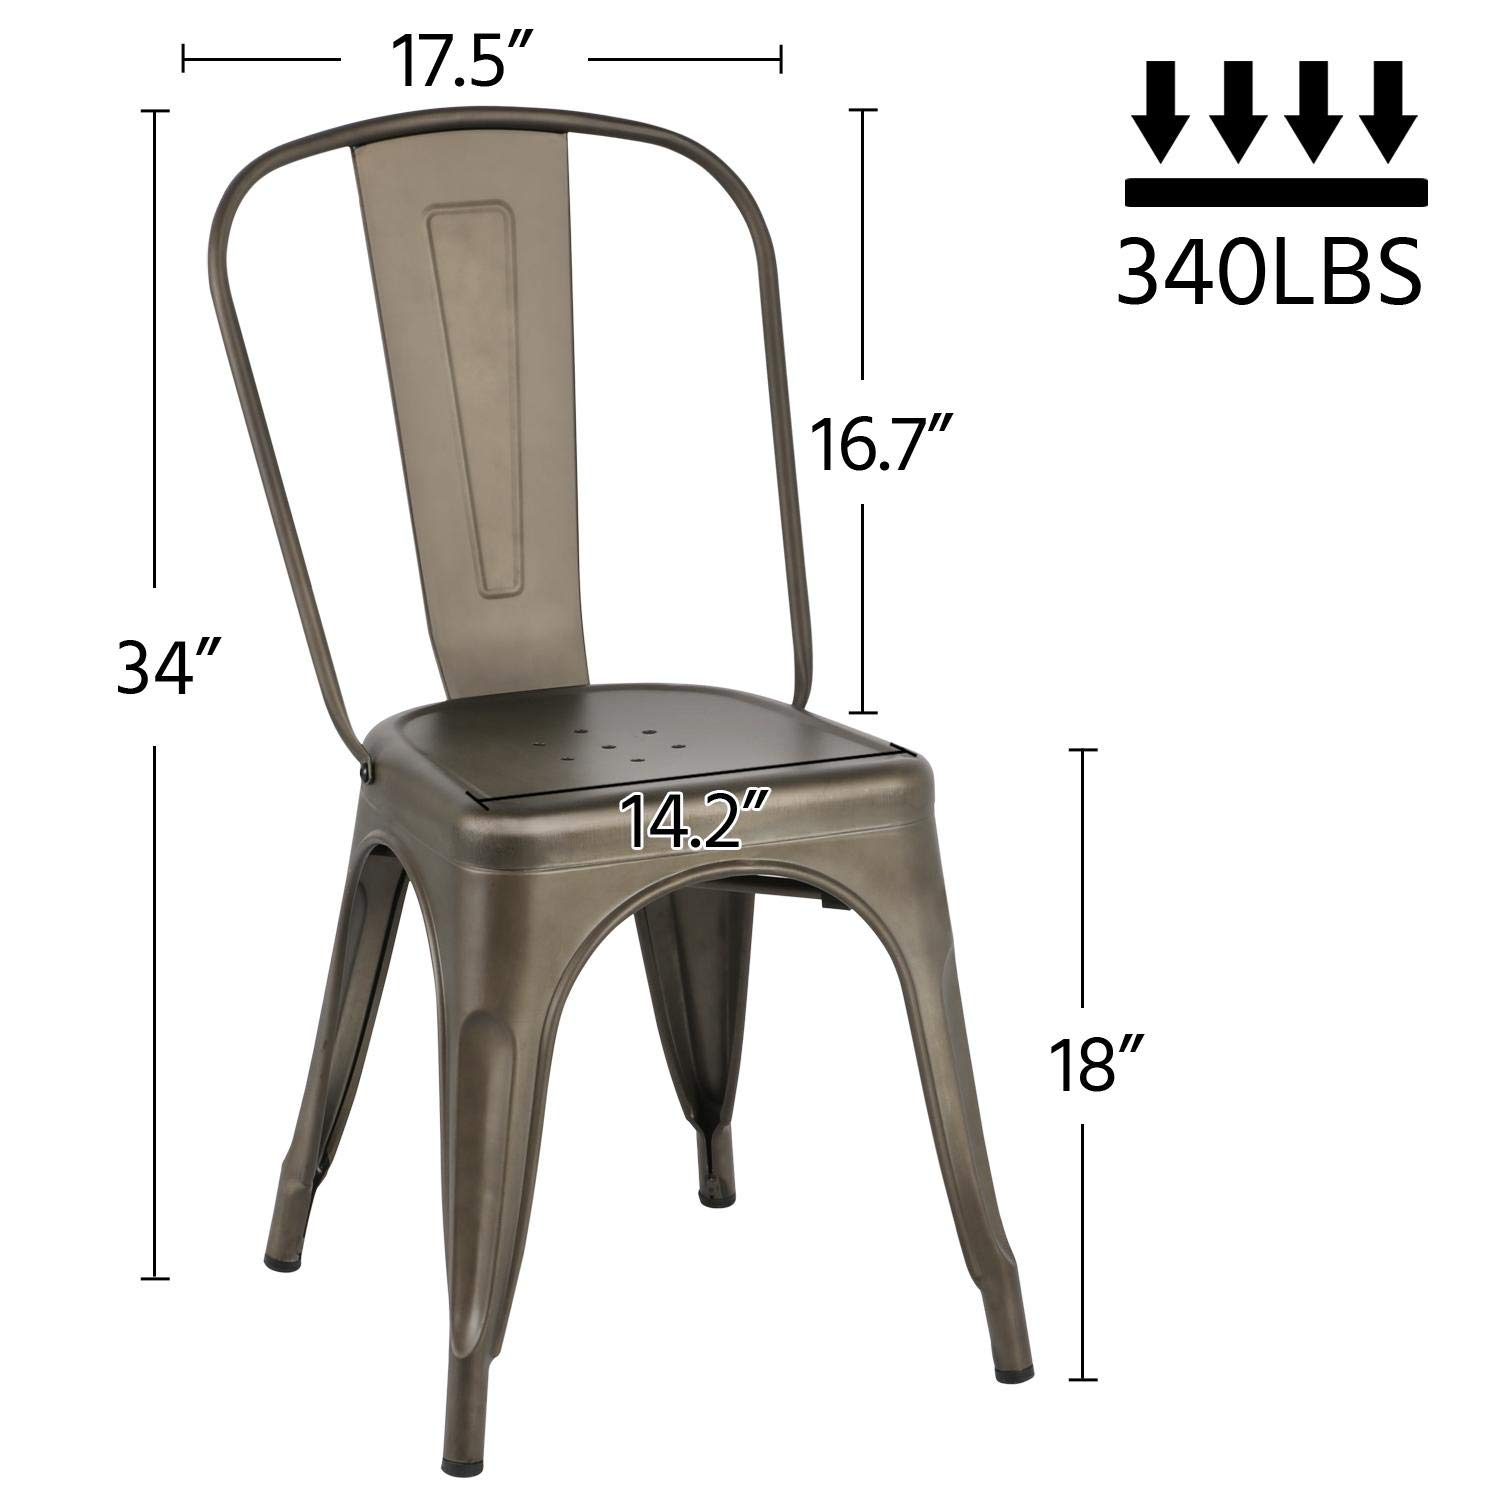 Yaheetech Iron Metal Dining Chairs Stackable Side Chairs with Back Indoor-Outdoor Classic/Chic/Industrial/Vintage Bistro Café Trattoria Kitchen Gun Metal,Set of 4 by Yaheetech (Image #2)